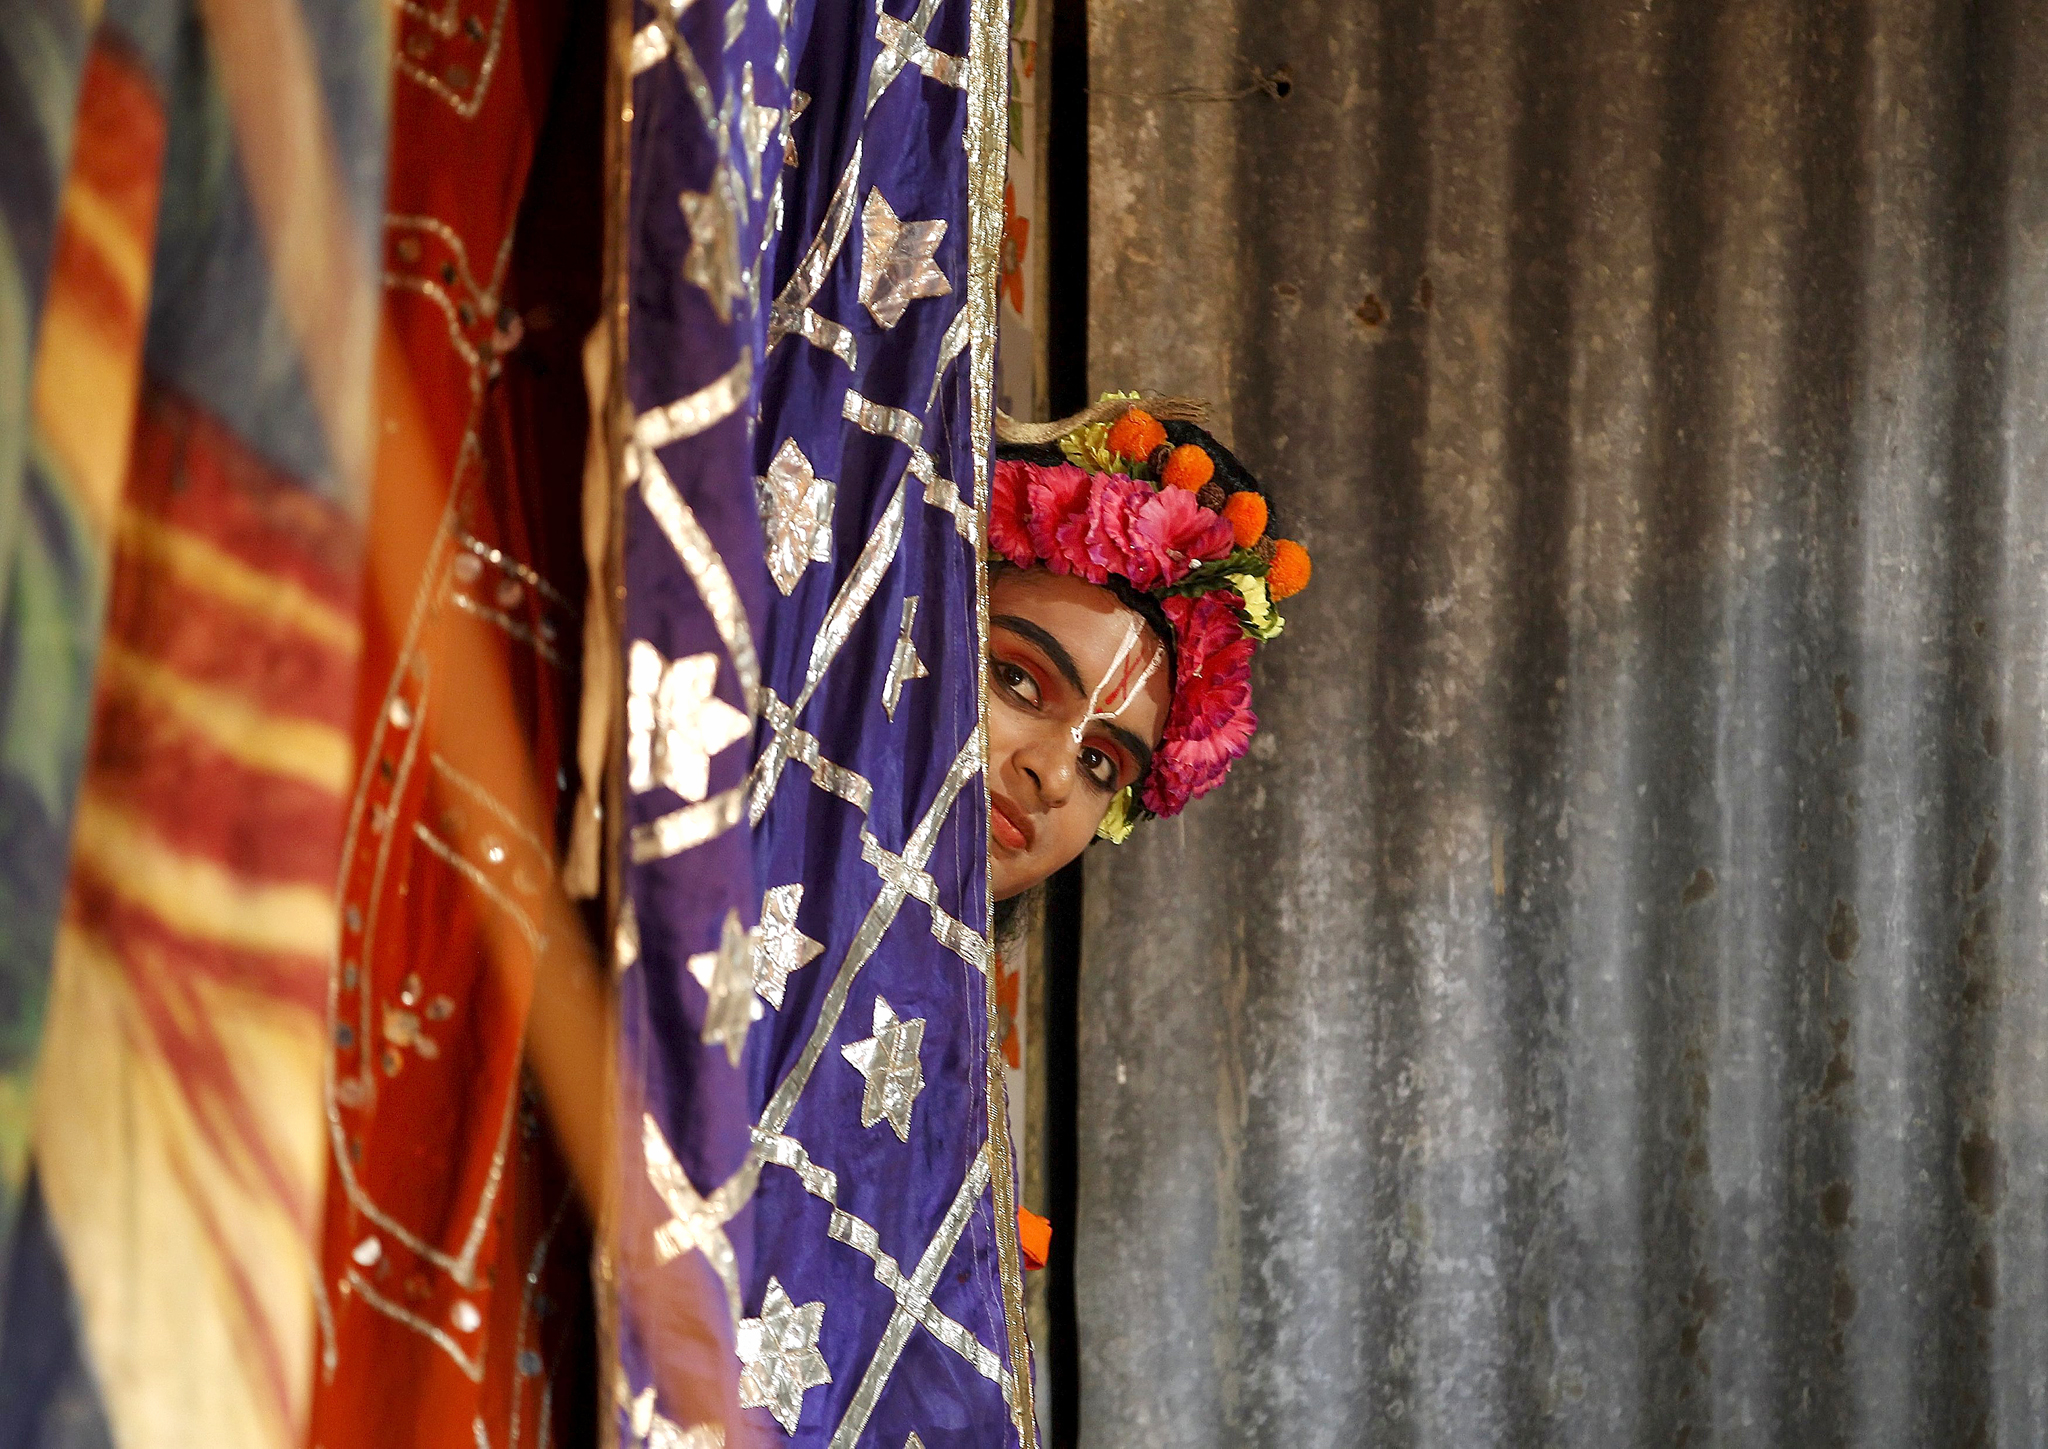 "An artist peeps out as he waits backstage to take part in the Ramlila performance, a re-enactment of the life of Hindu Lord Rama, ahead of Dussehra in Ahmedabad...An artist peeps out from behind a curtain as he waits backstage to take part in the Ramlila performance, a re-enactment of the life of Hindu Lord Rama, ahead of Dussehra in Ahmedabad, India, October 19, 2015. Effigies of the 10-headed demon king ""Ravana"" are burnt on Dussehra, the Hindu festival that commemorates the triumph of Lord Rama over the Ravana, marking the victory of good over evil. Dussehra is celebrated on October 22.  Picture taken October 19, 2015. REUTERS/Amit Dave"